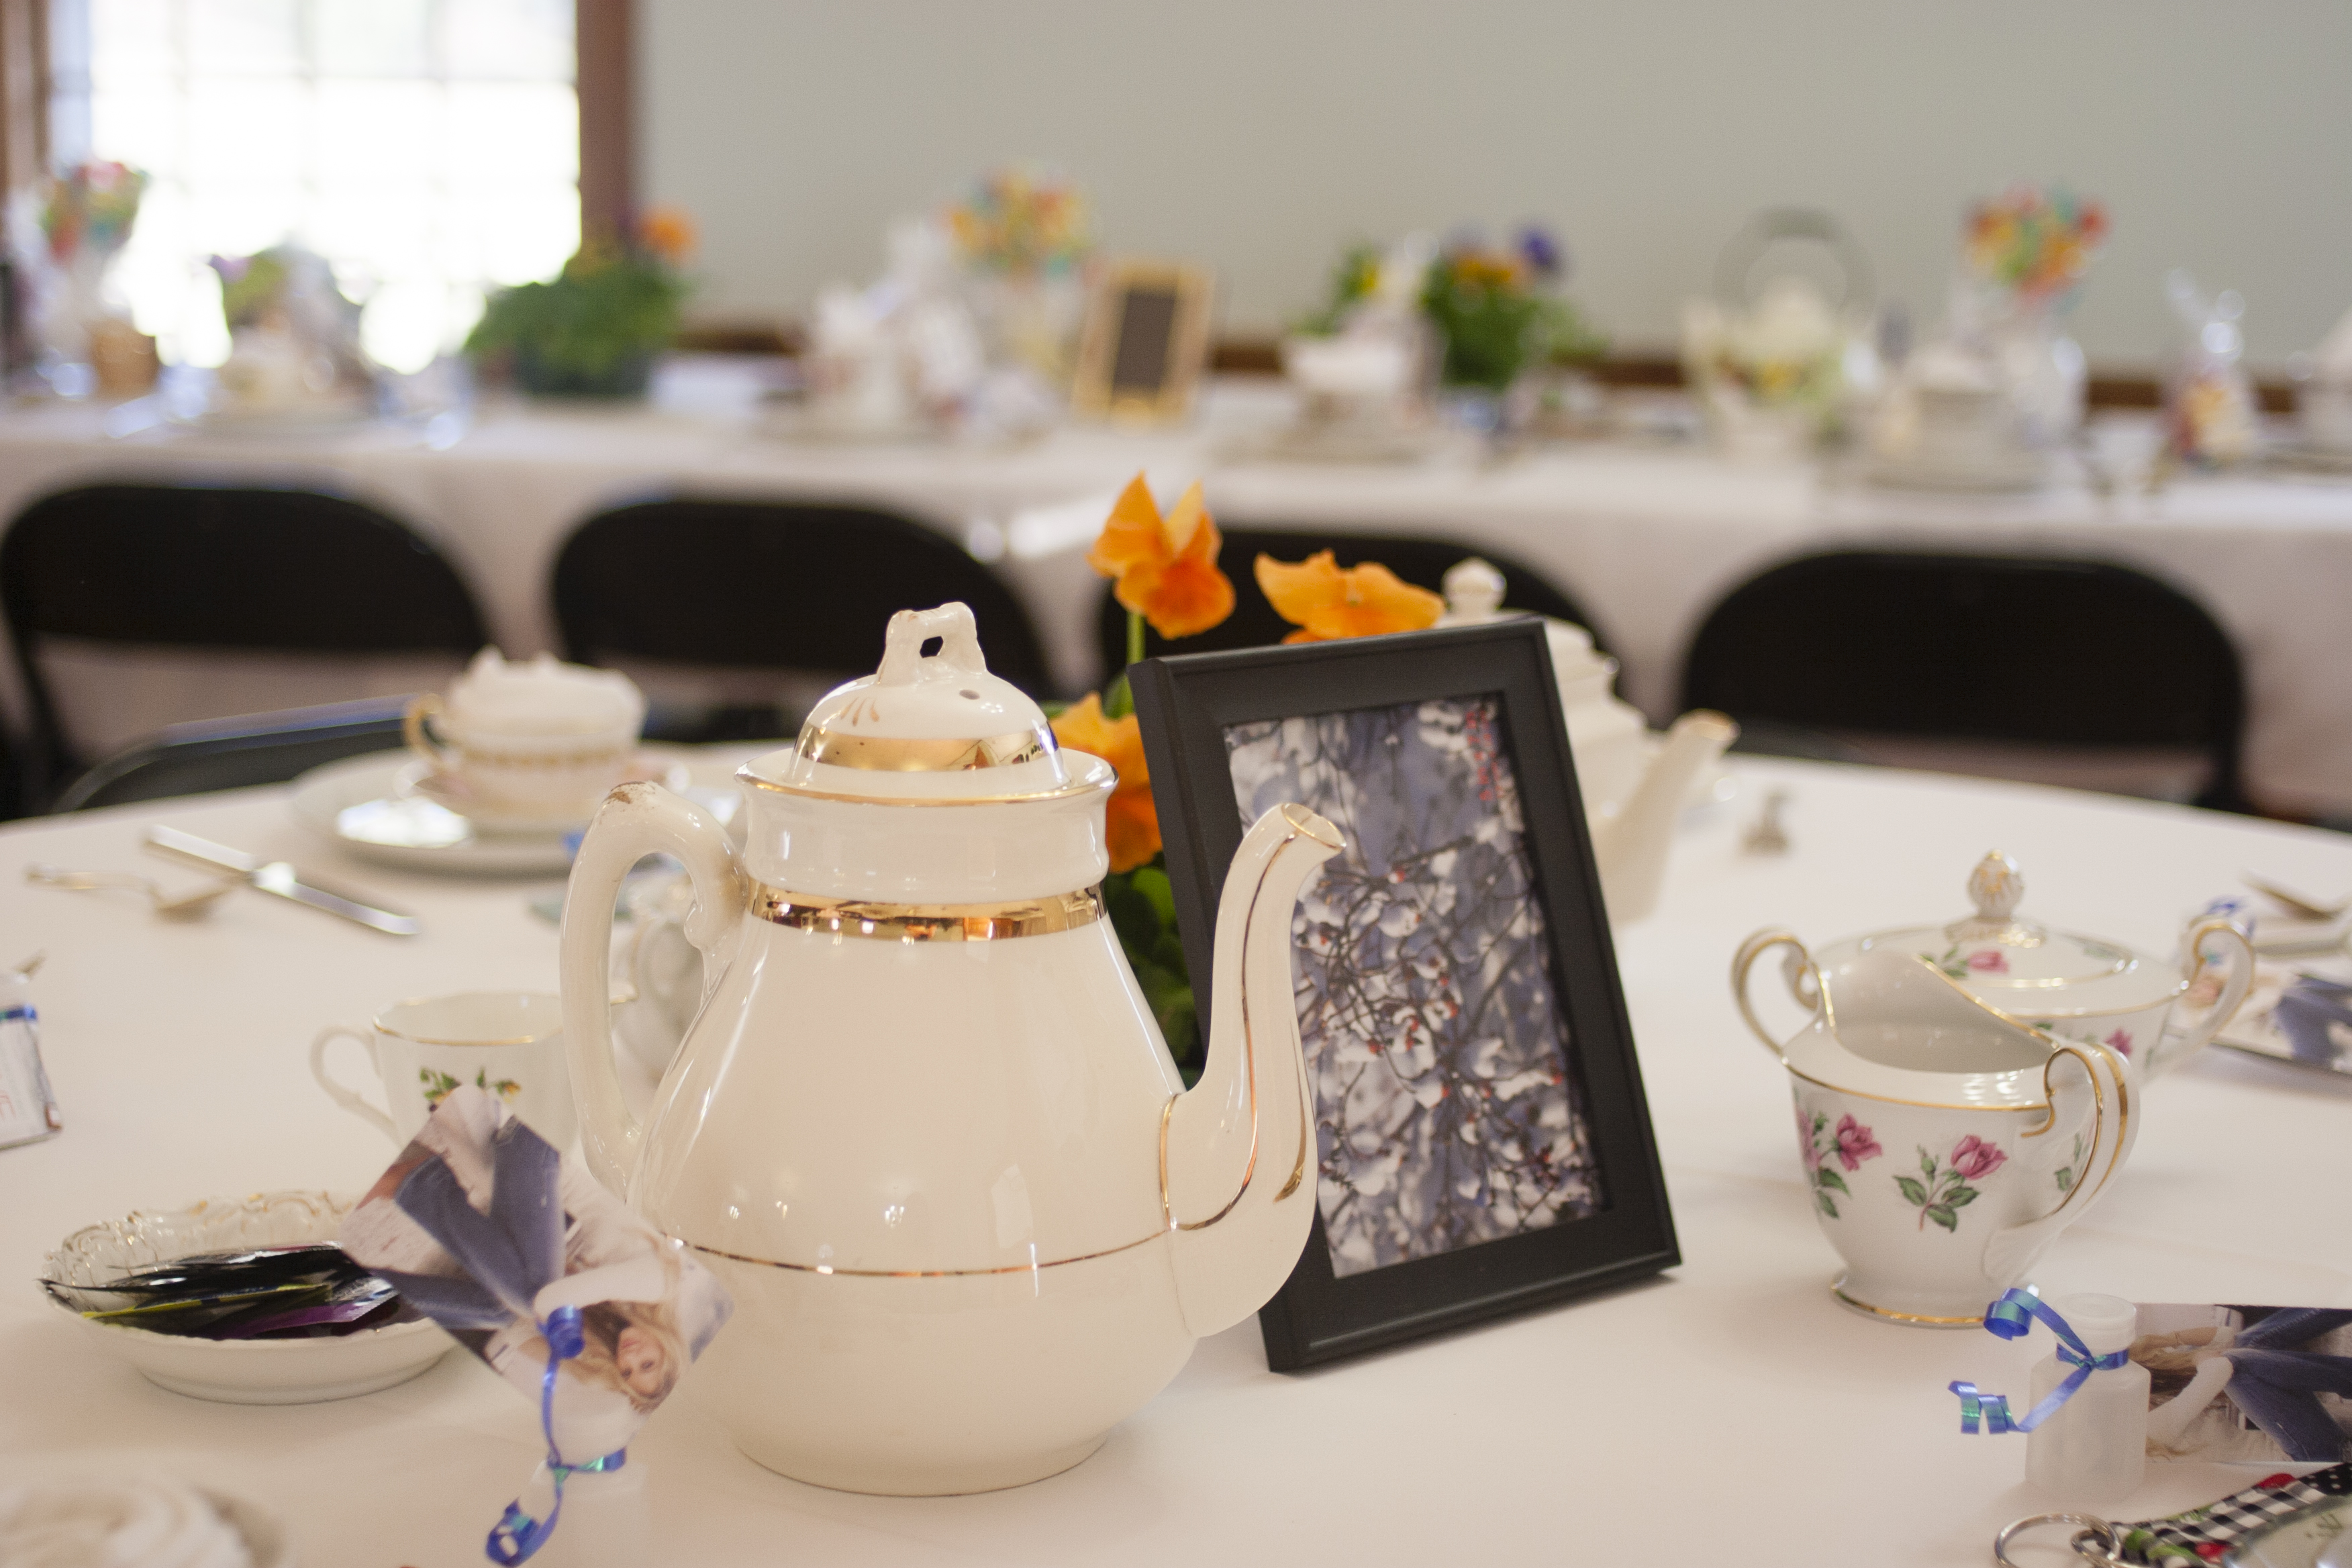 01-1 Mother's Day Tea 1